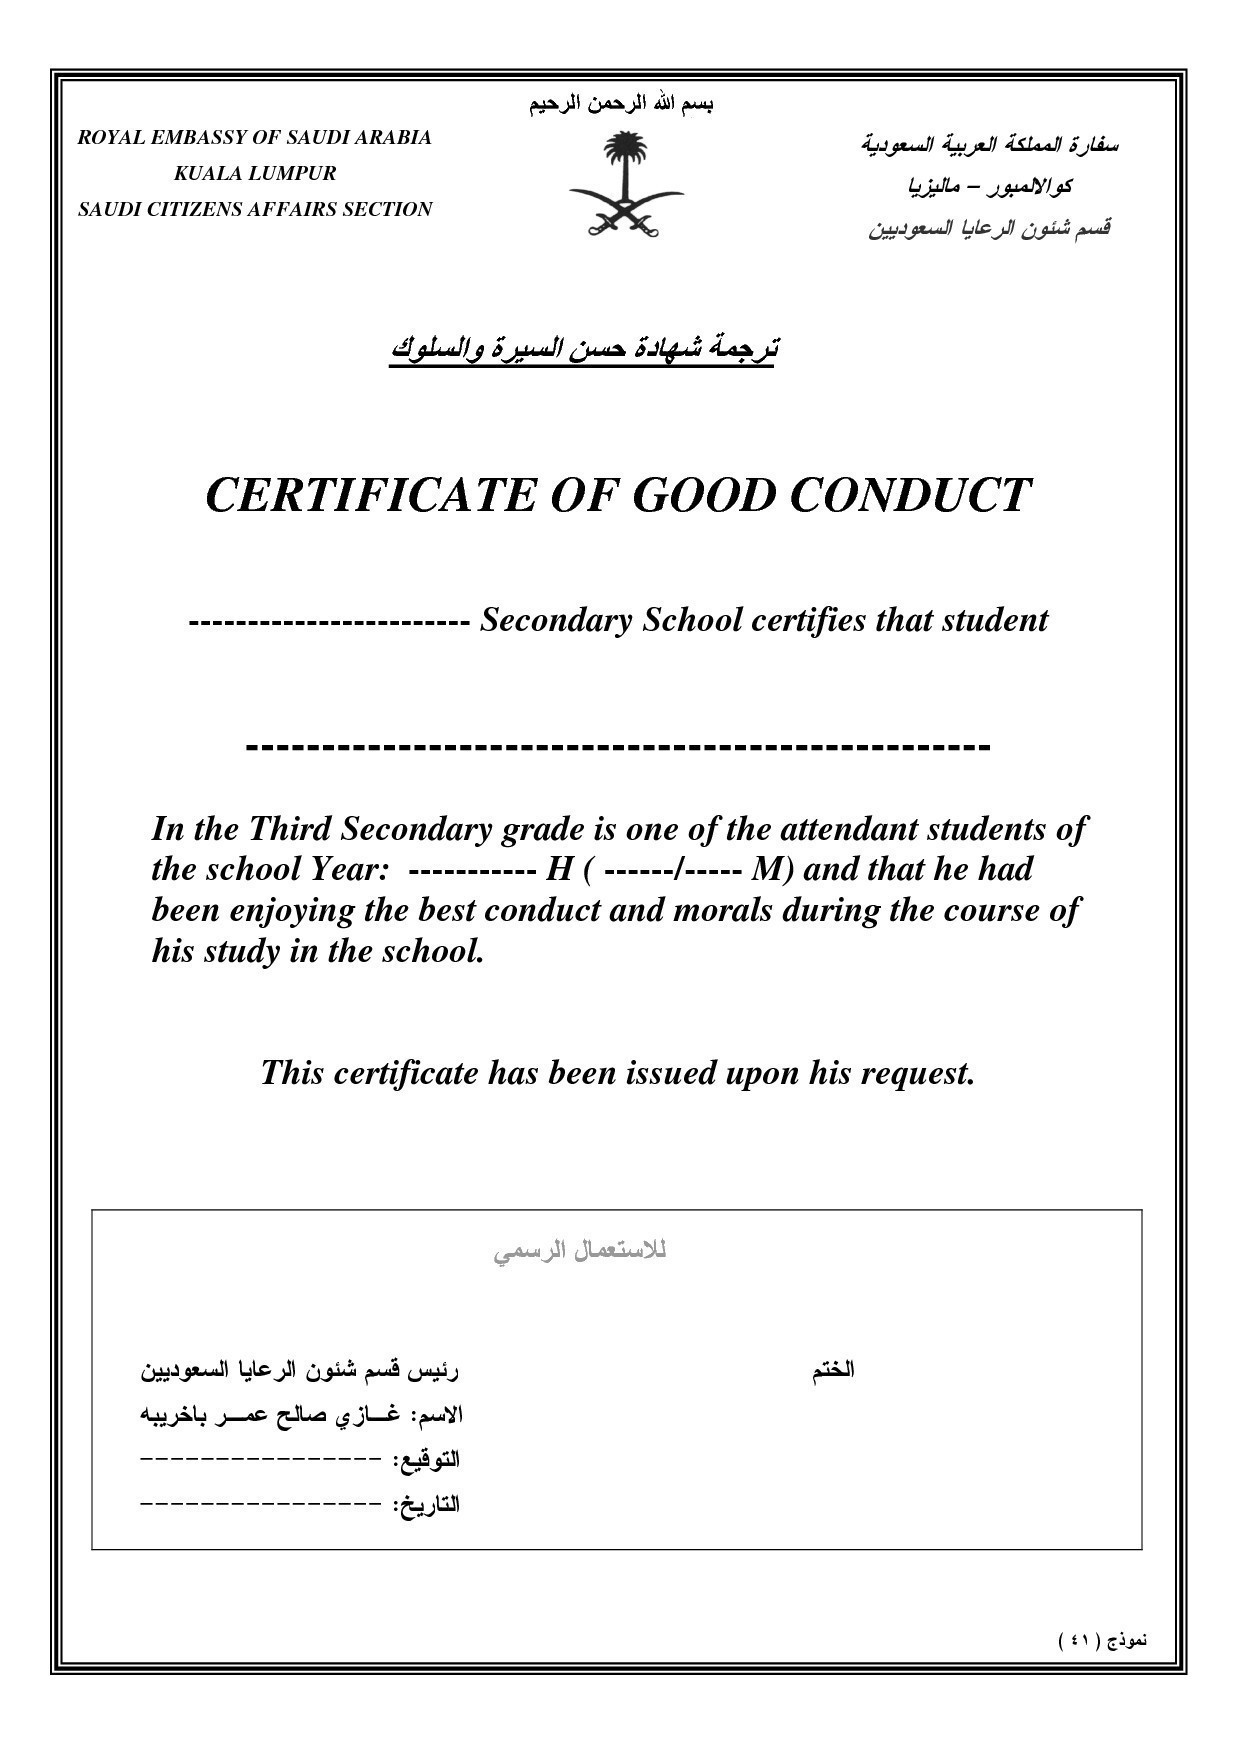 Letter Of Good Conduct Template - Student Certificate Good Conduct Sample Best Good Conduct